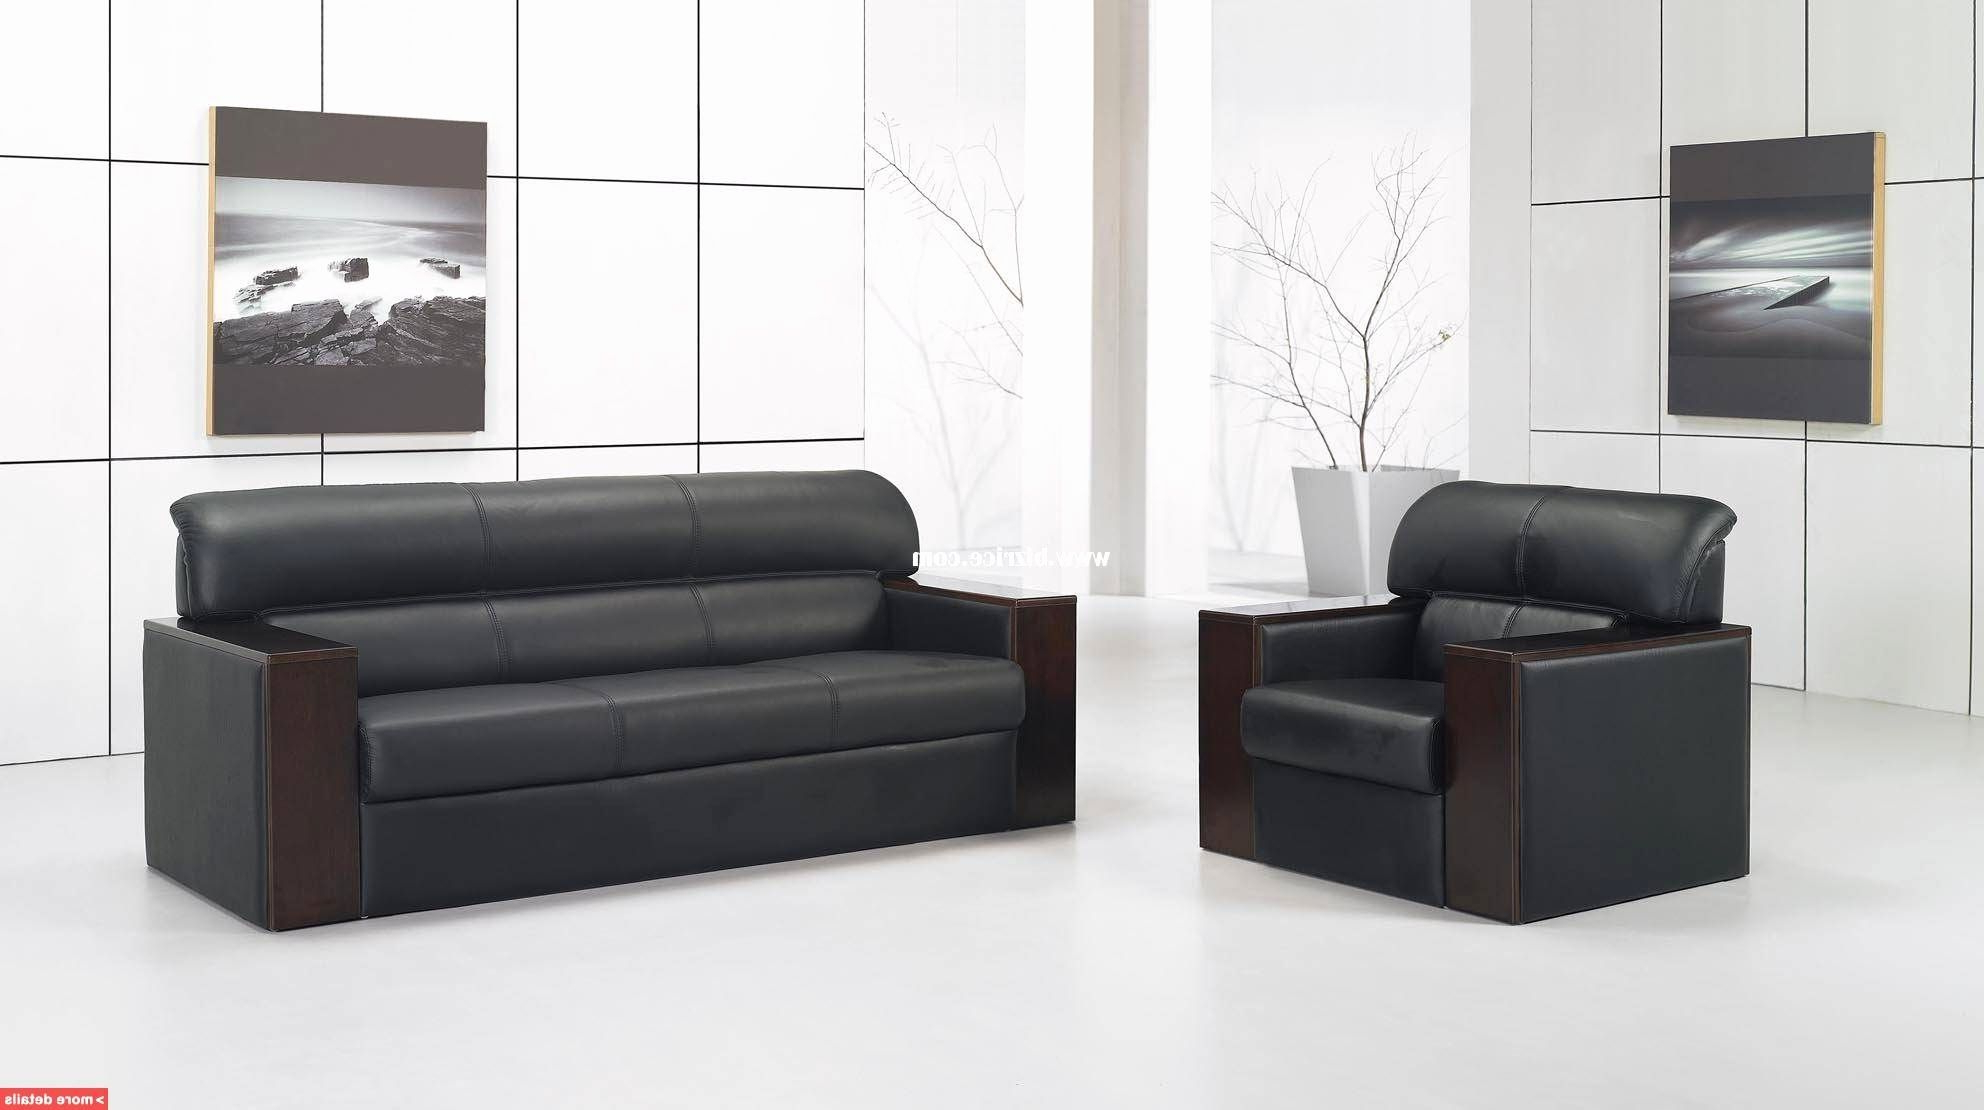 Widely Used Best Of Office Reception Sofas Art Office Reception Sofas Awesome Inside Office Sofa Chairs (View 2 of 20)